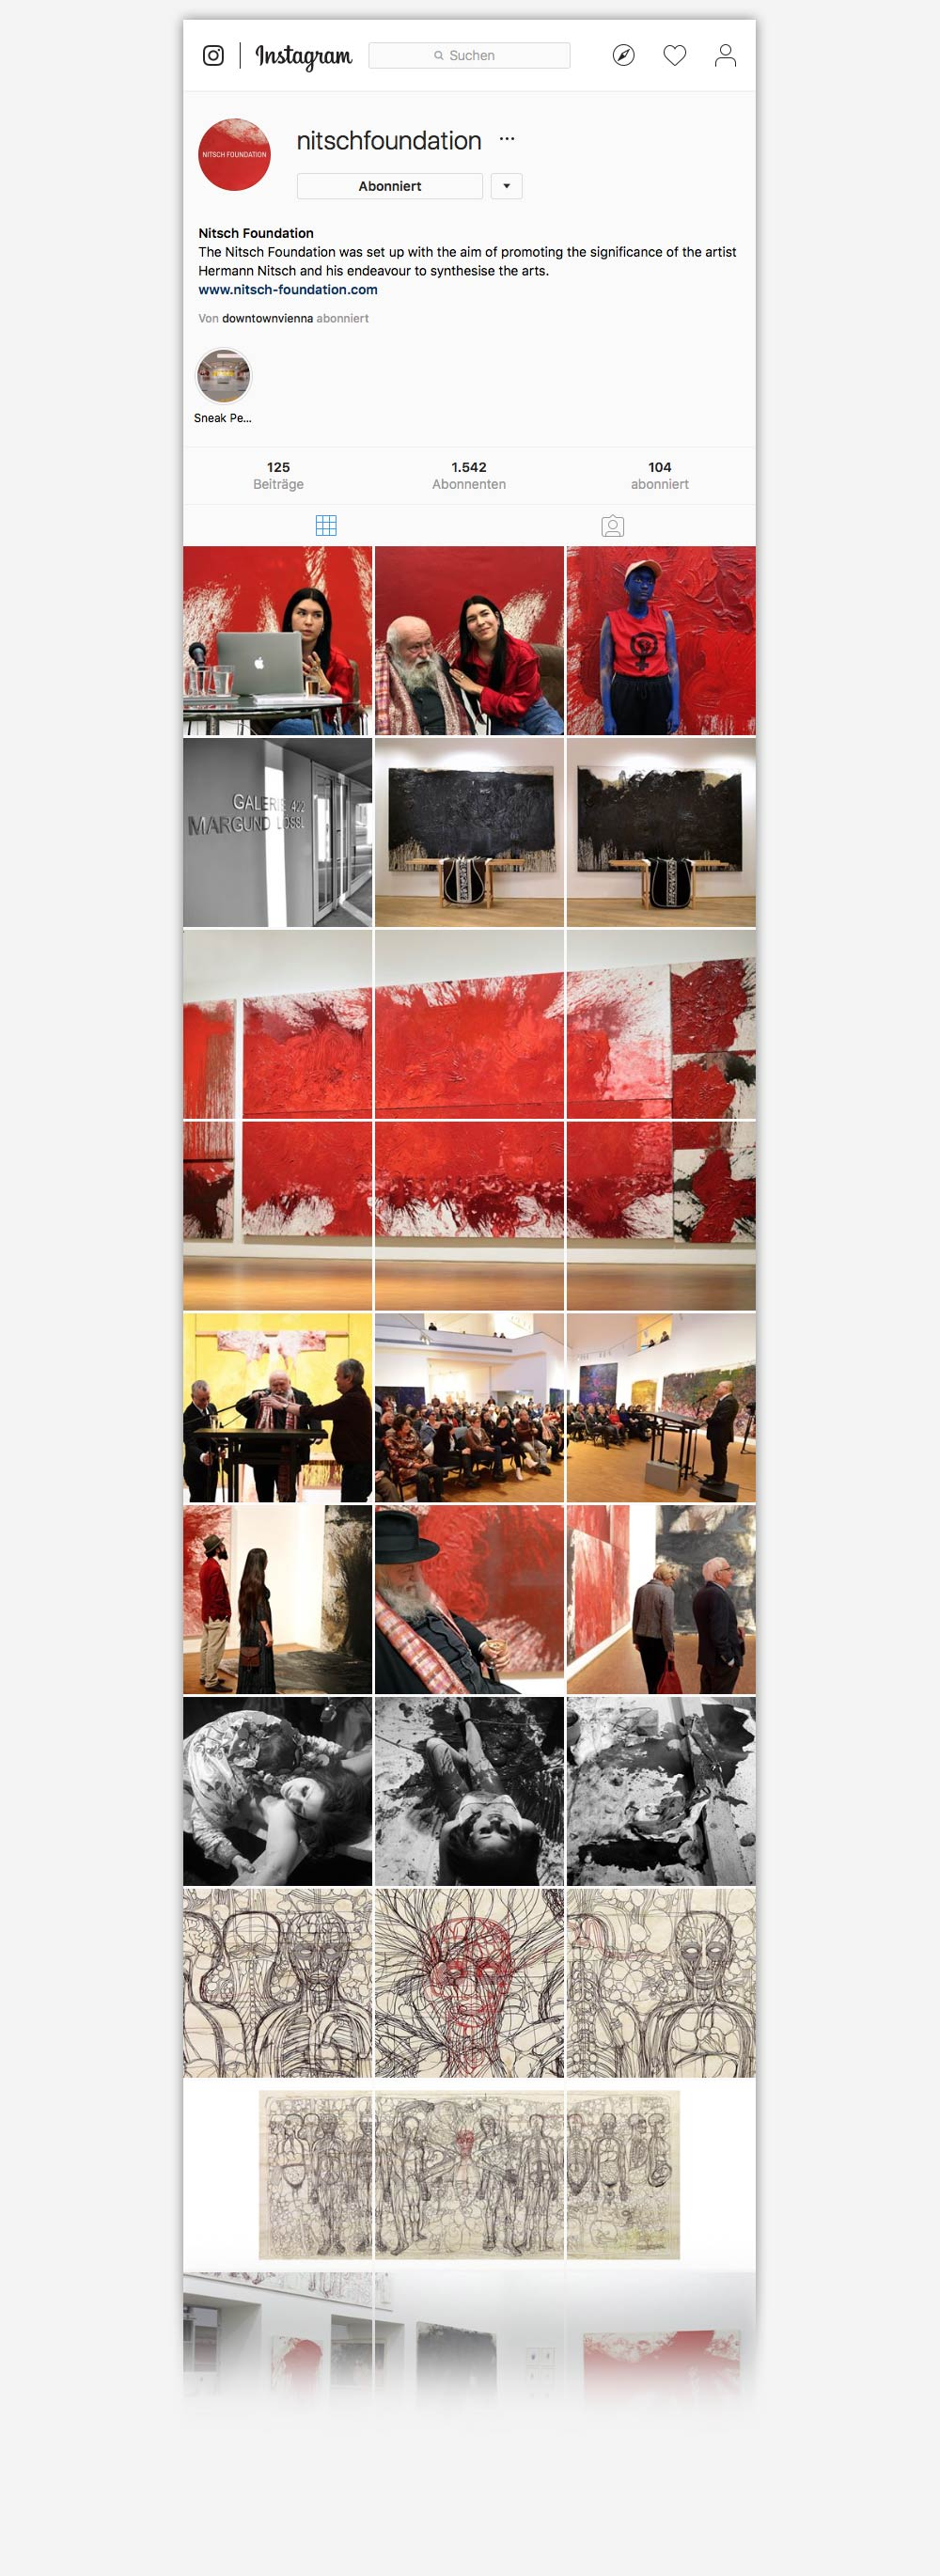 Nitsch Foundation Hermann Nitsch C21 new media design Social Media Facebook Social Media Agentur Webagentur Digitalagentur Online Agentur Wien